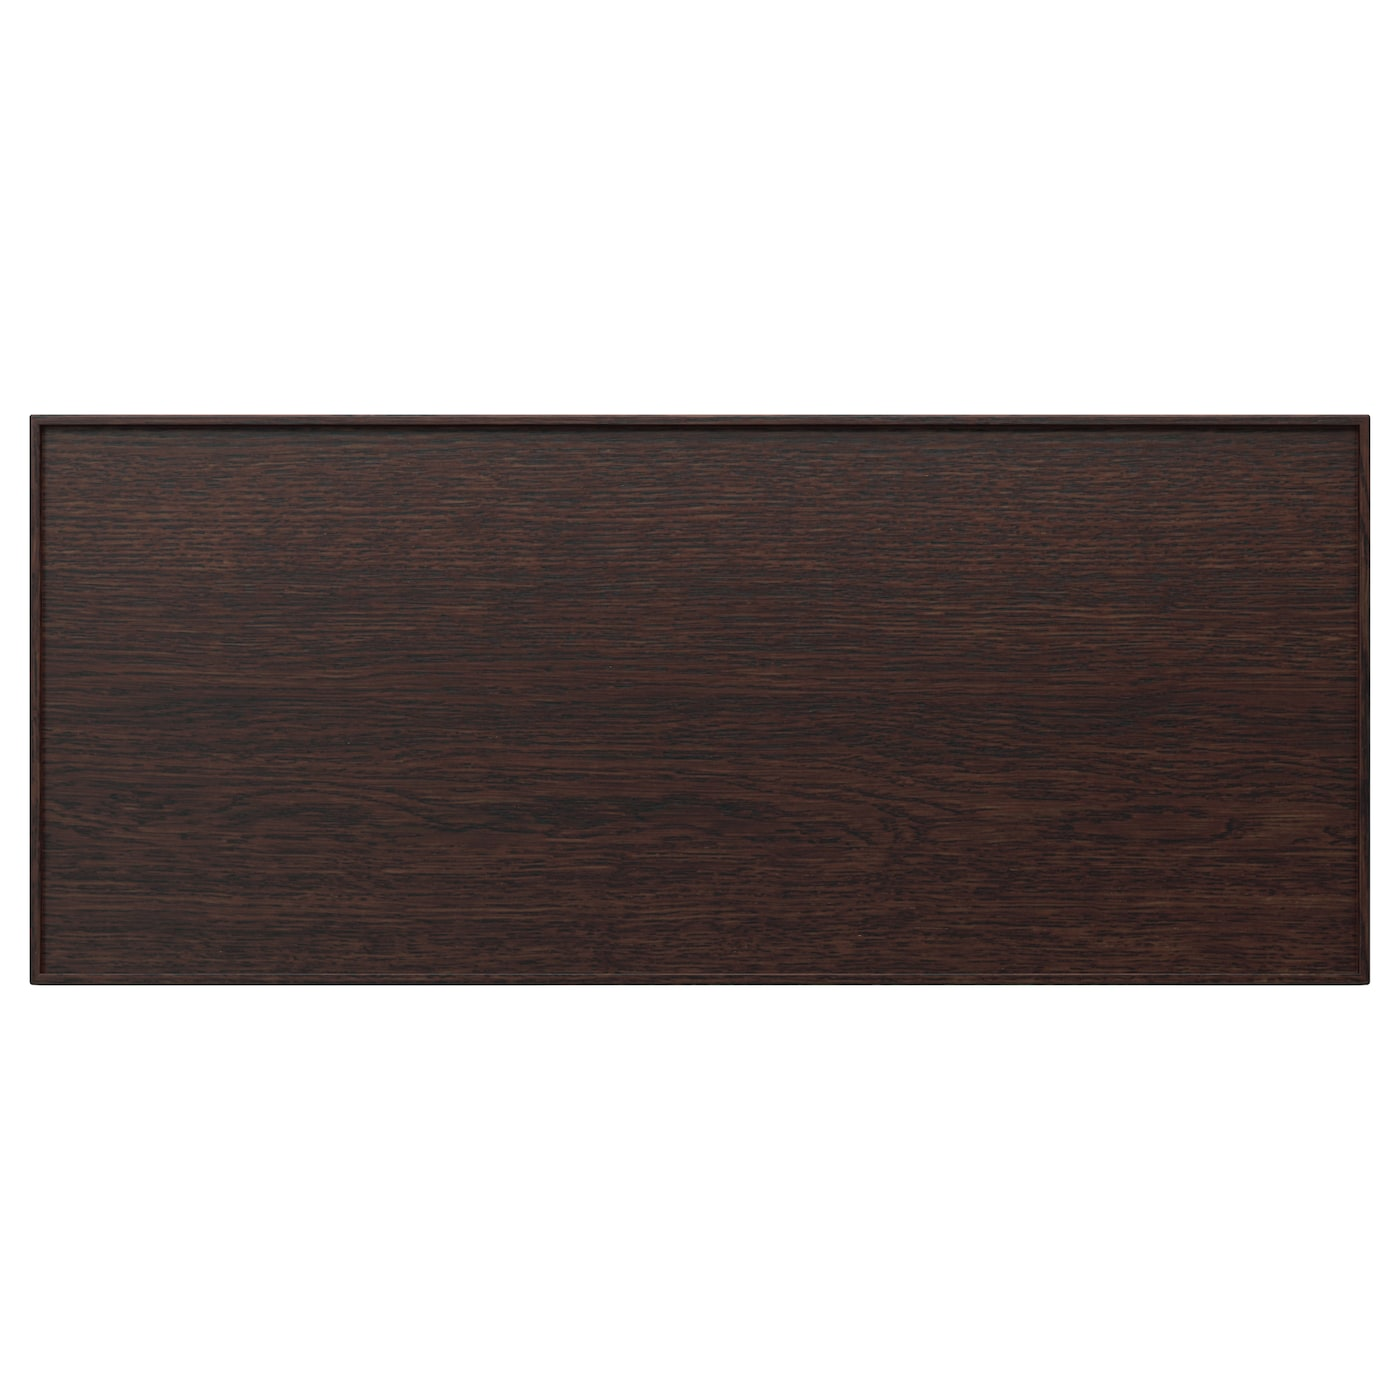 IKEA INVIKEN drawer front Veneer is a durable natural material.